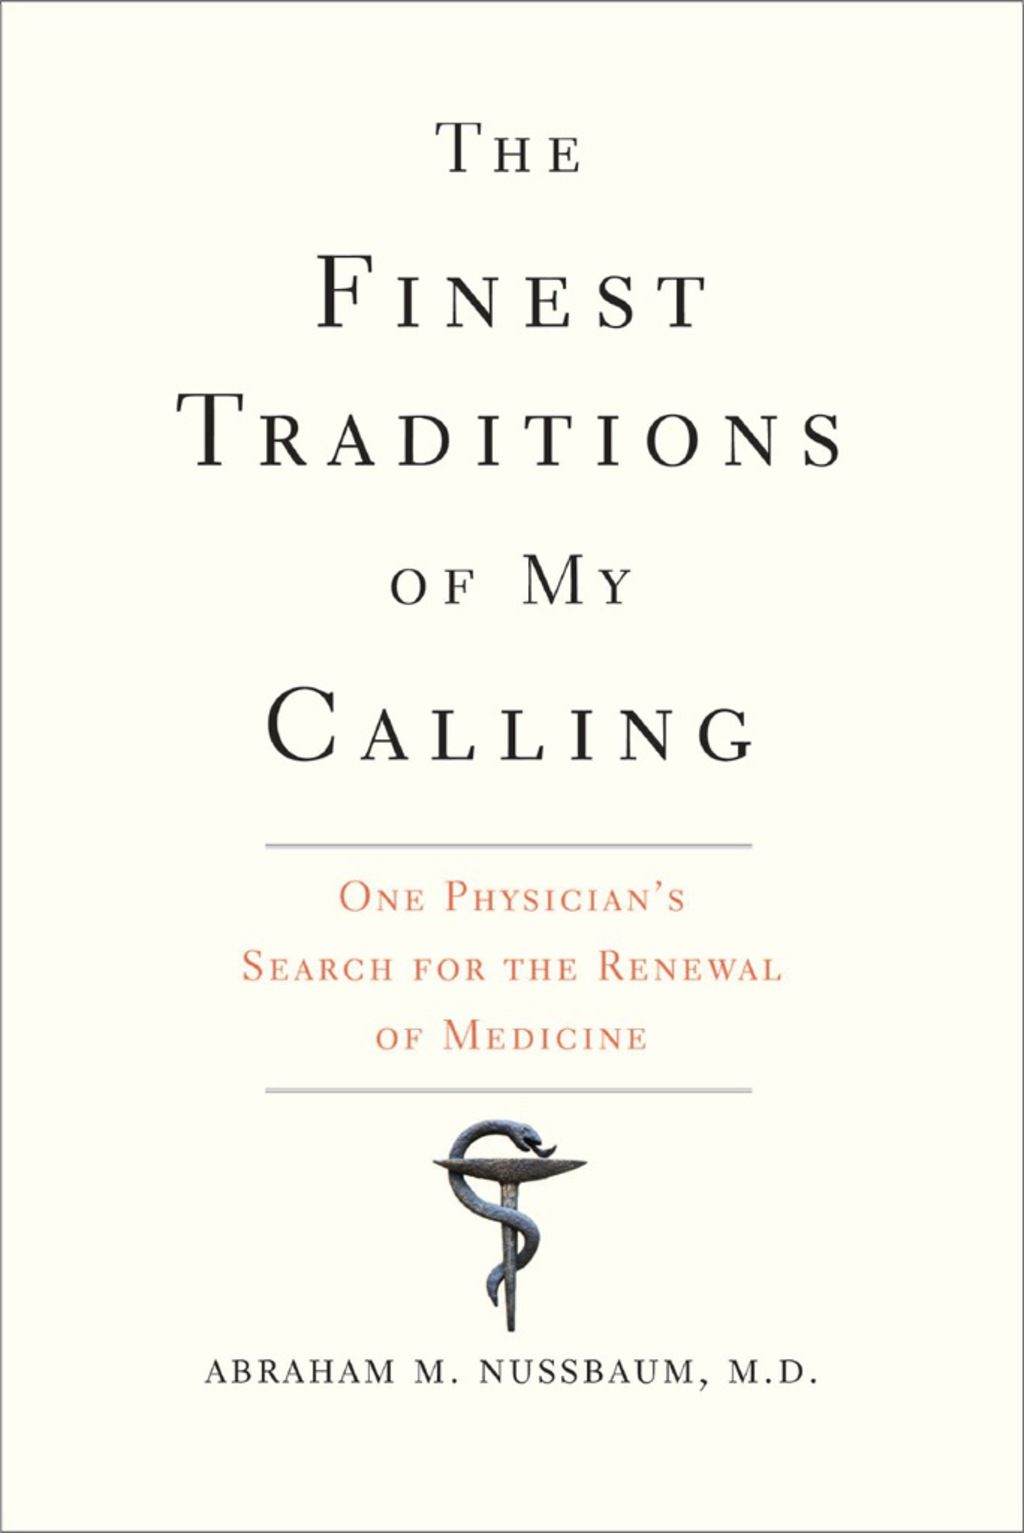 The Finest Traditions of My Calling One Physician's